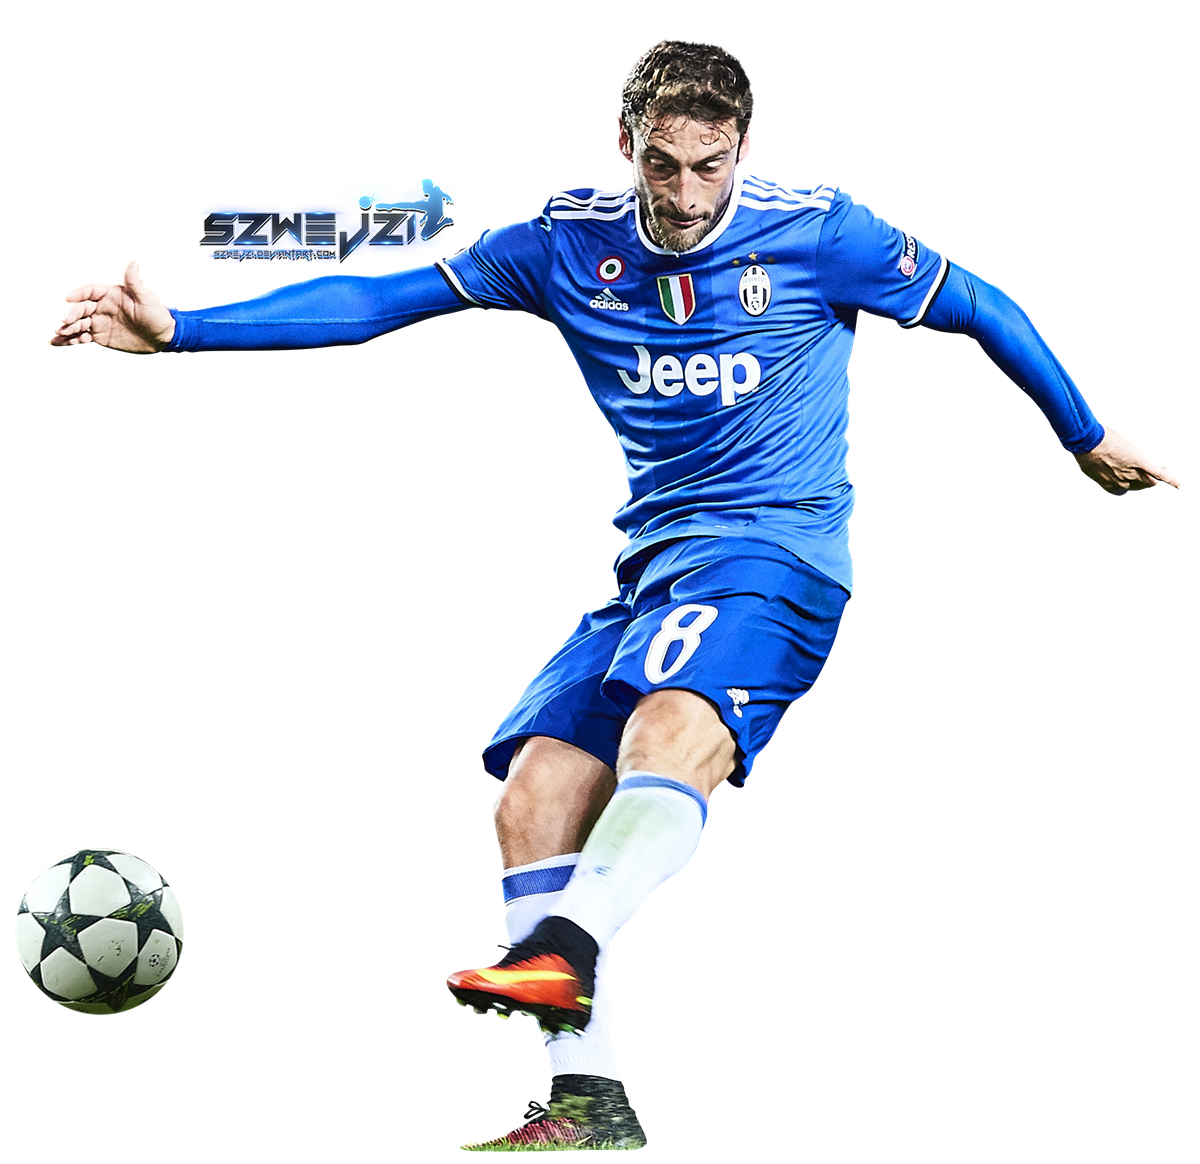 Clipart blue football player clipart black and white Claudio Marchisio by szwejzi on DeviantArt clipart black and white